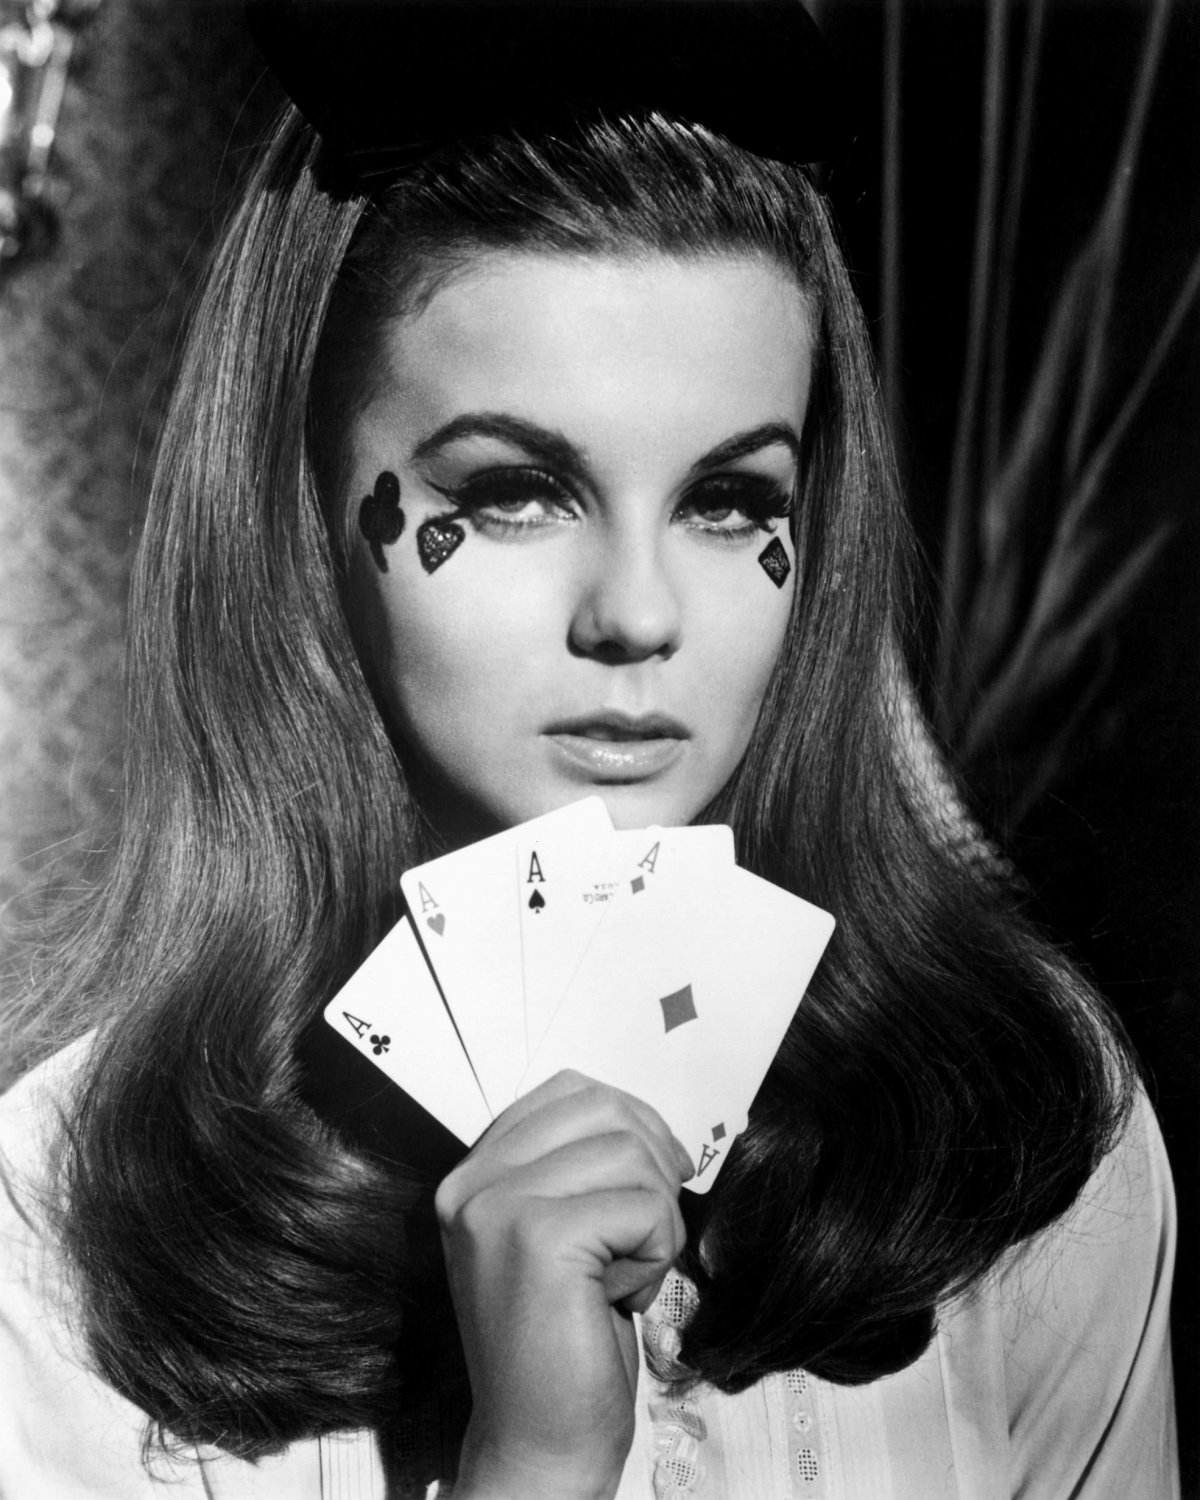 """ANN-MARGRET IN THE 1967 FILM """"THE SWINGER"""" - 8X10 PUBLICITY PHOTO (OP-096)"""